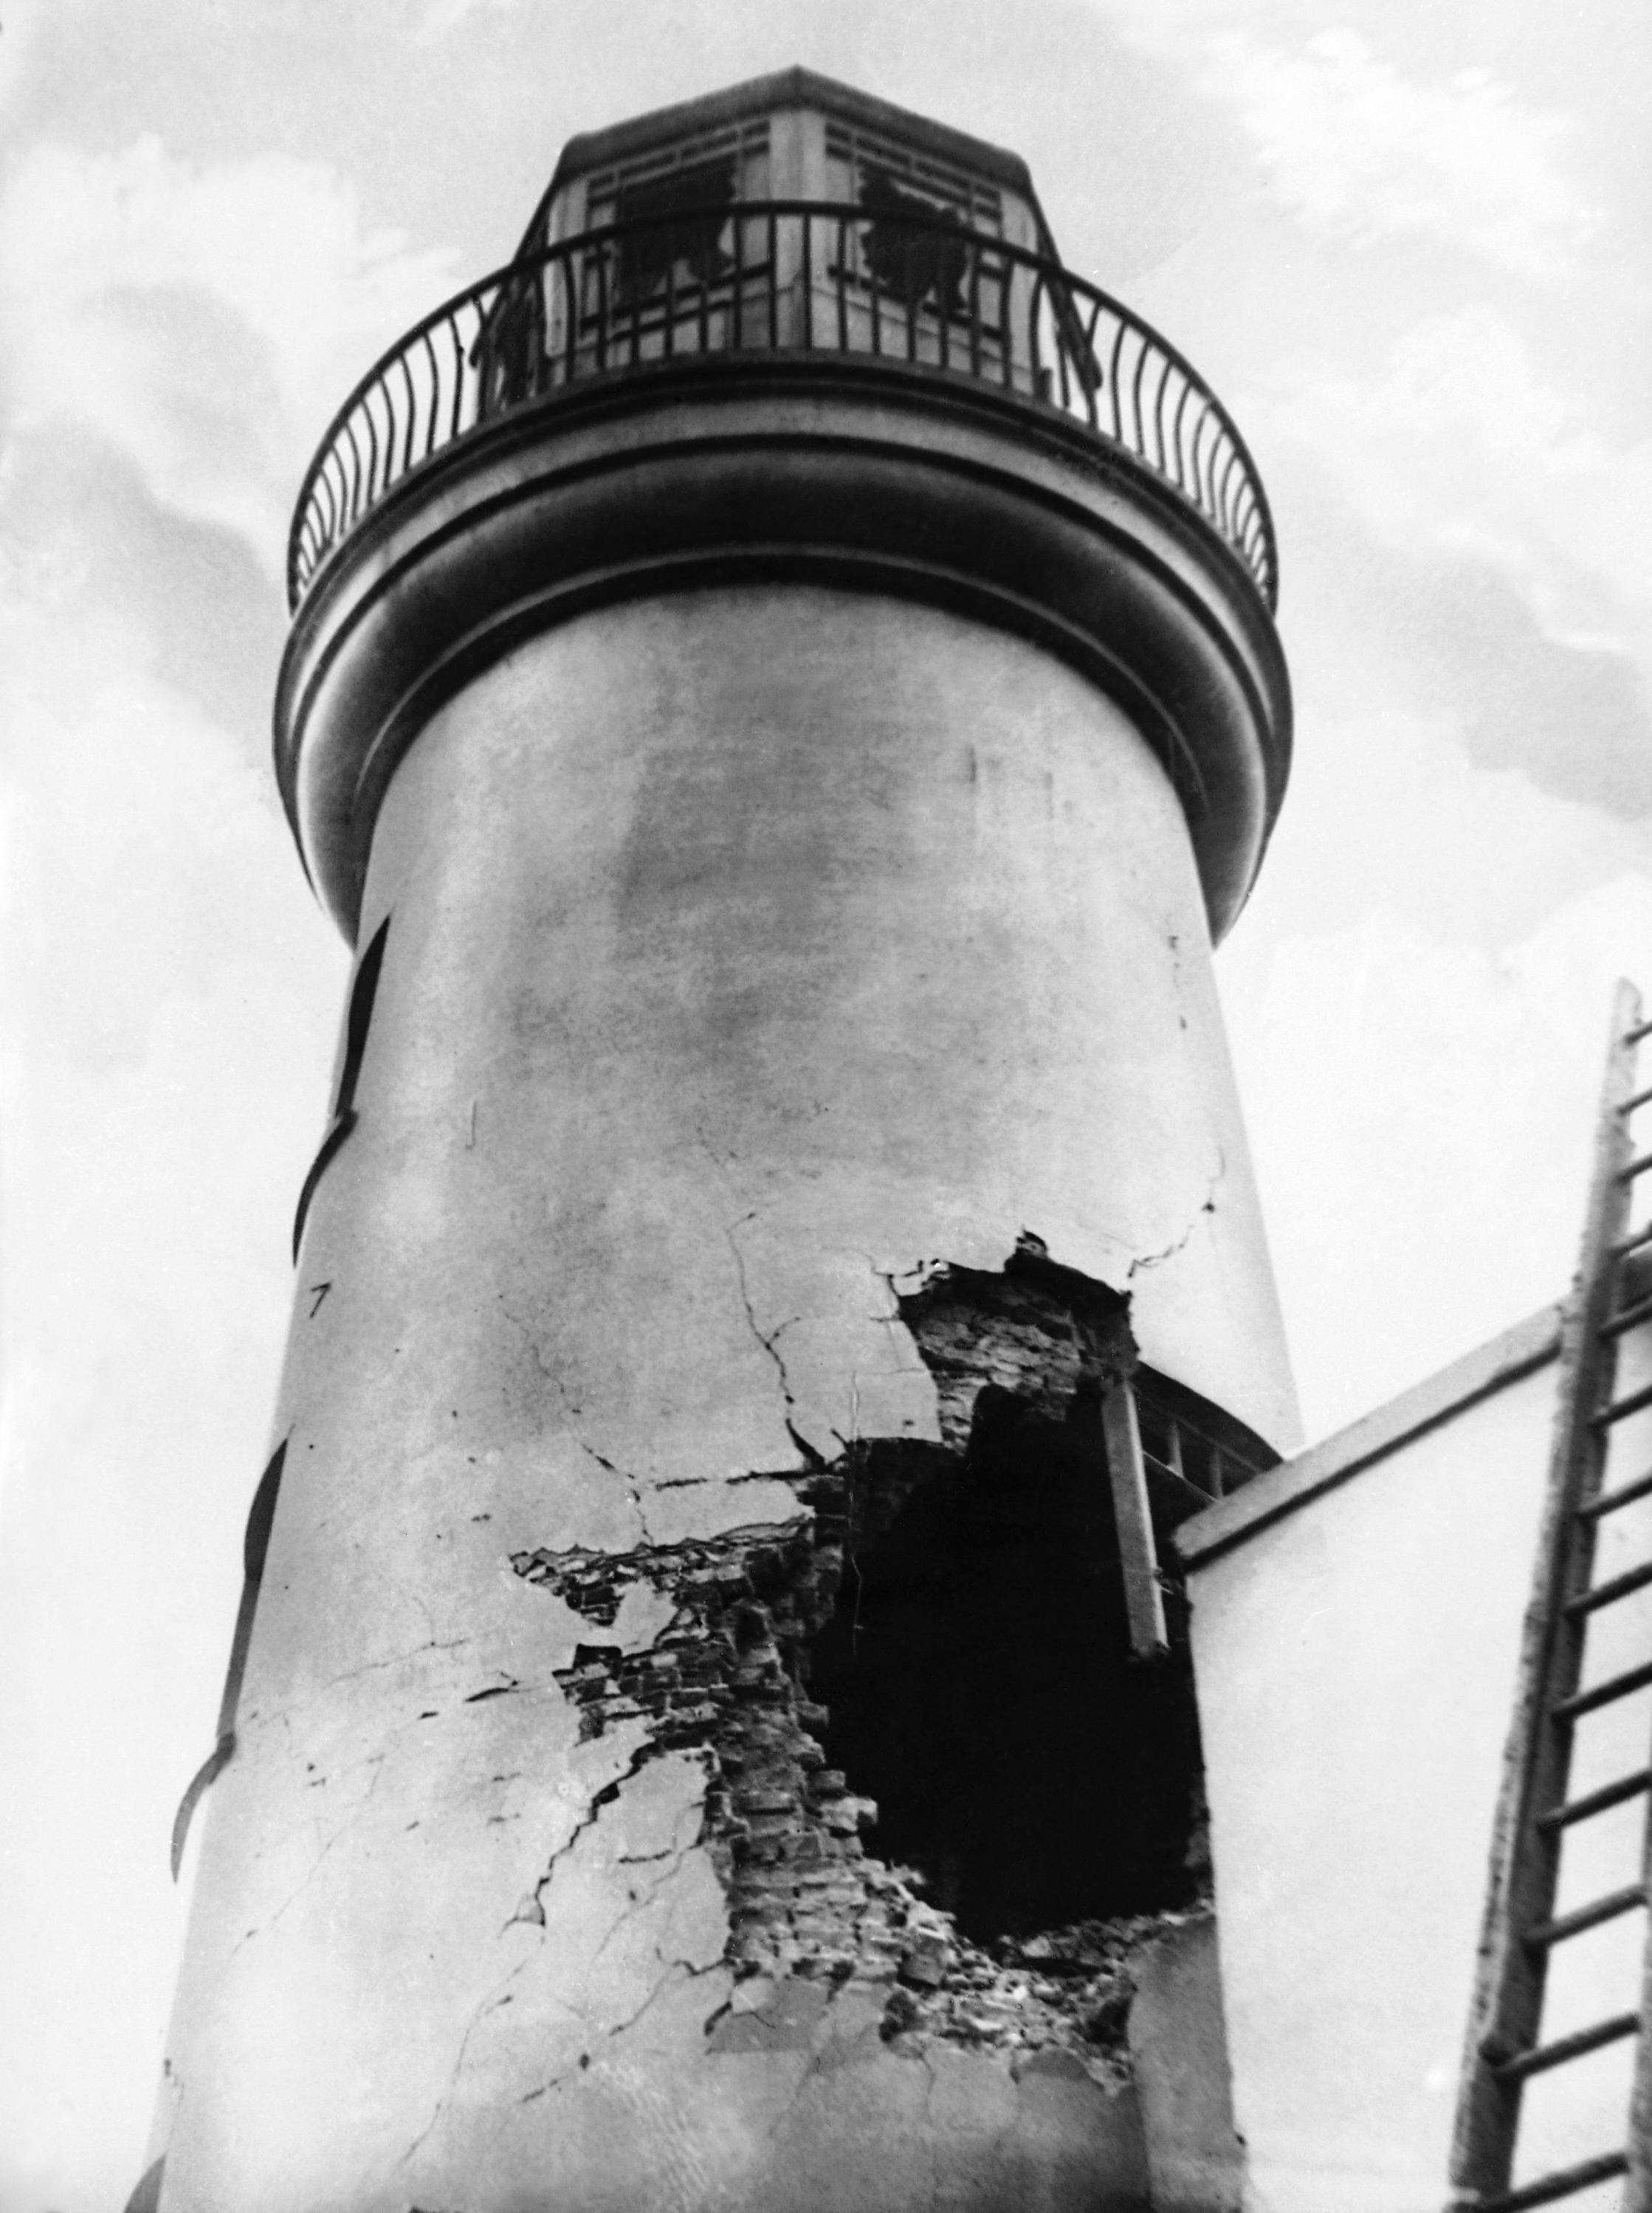 22 OF 100: In this December 1914 file photo, damage from German bombardment to the lighthouse in Scarborough, northern England, during World War I.